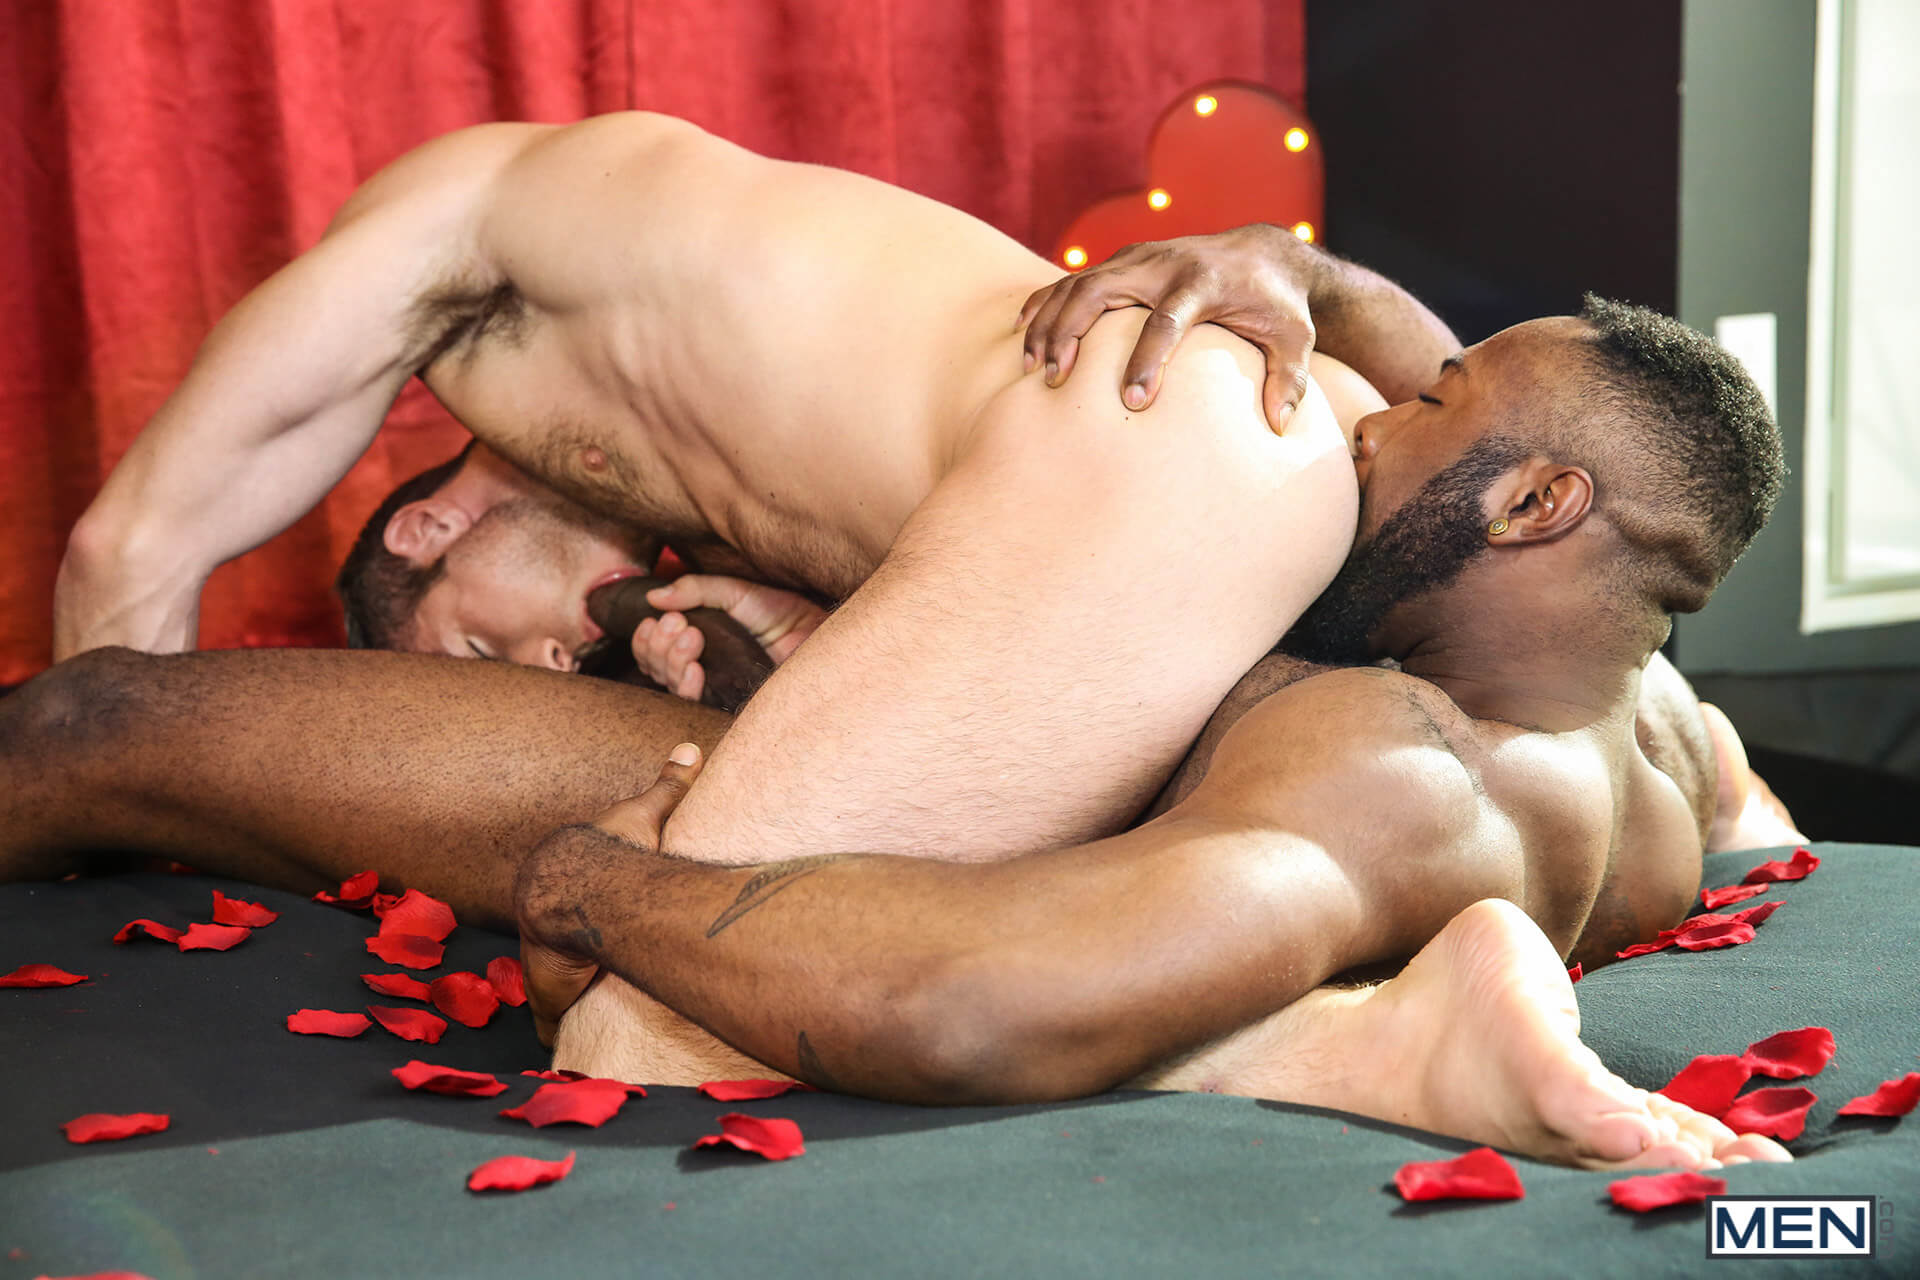 MEN.COM » Gods Of Men » Dirty Valentine Part 2 » Alex Mecum » Noah Donovan